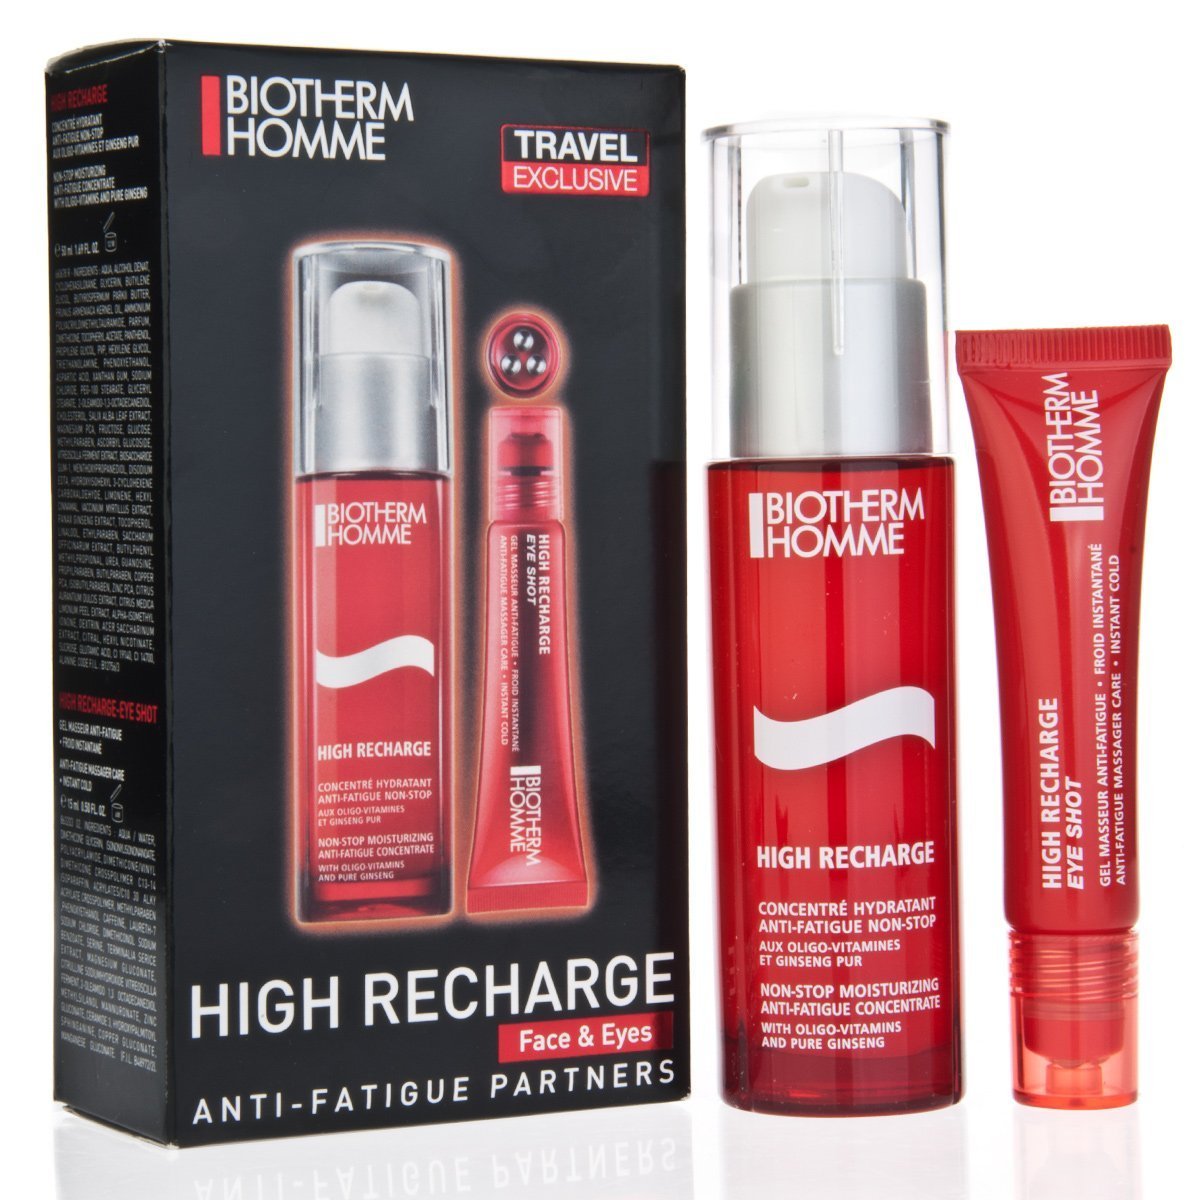 Biotherm Homme High Recharge Face and Eyes Kit, 2 Count